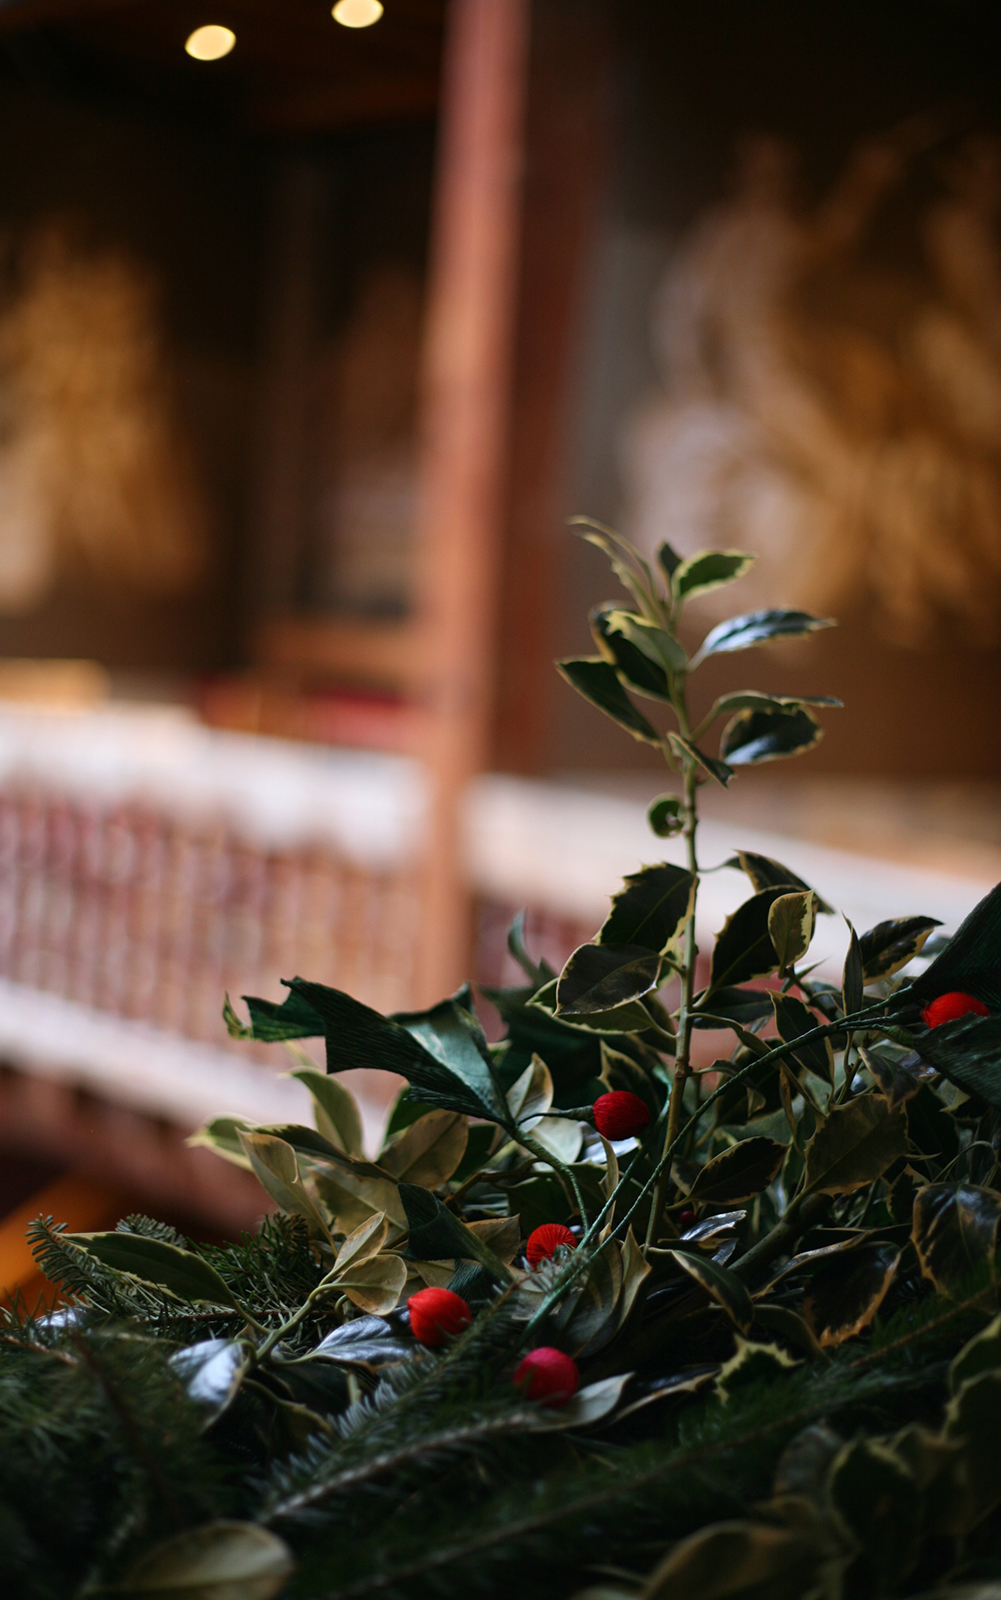 A close up of a holly wreath wrapped around wooden banisters.